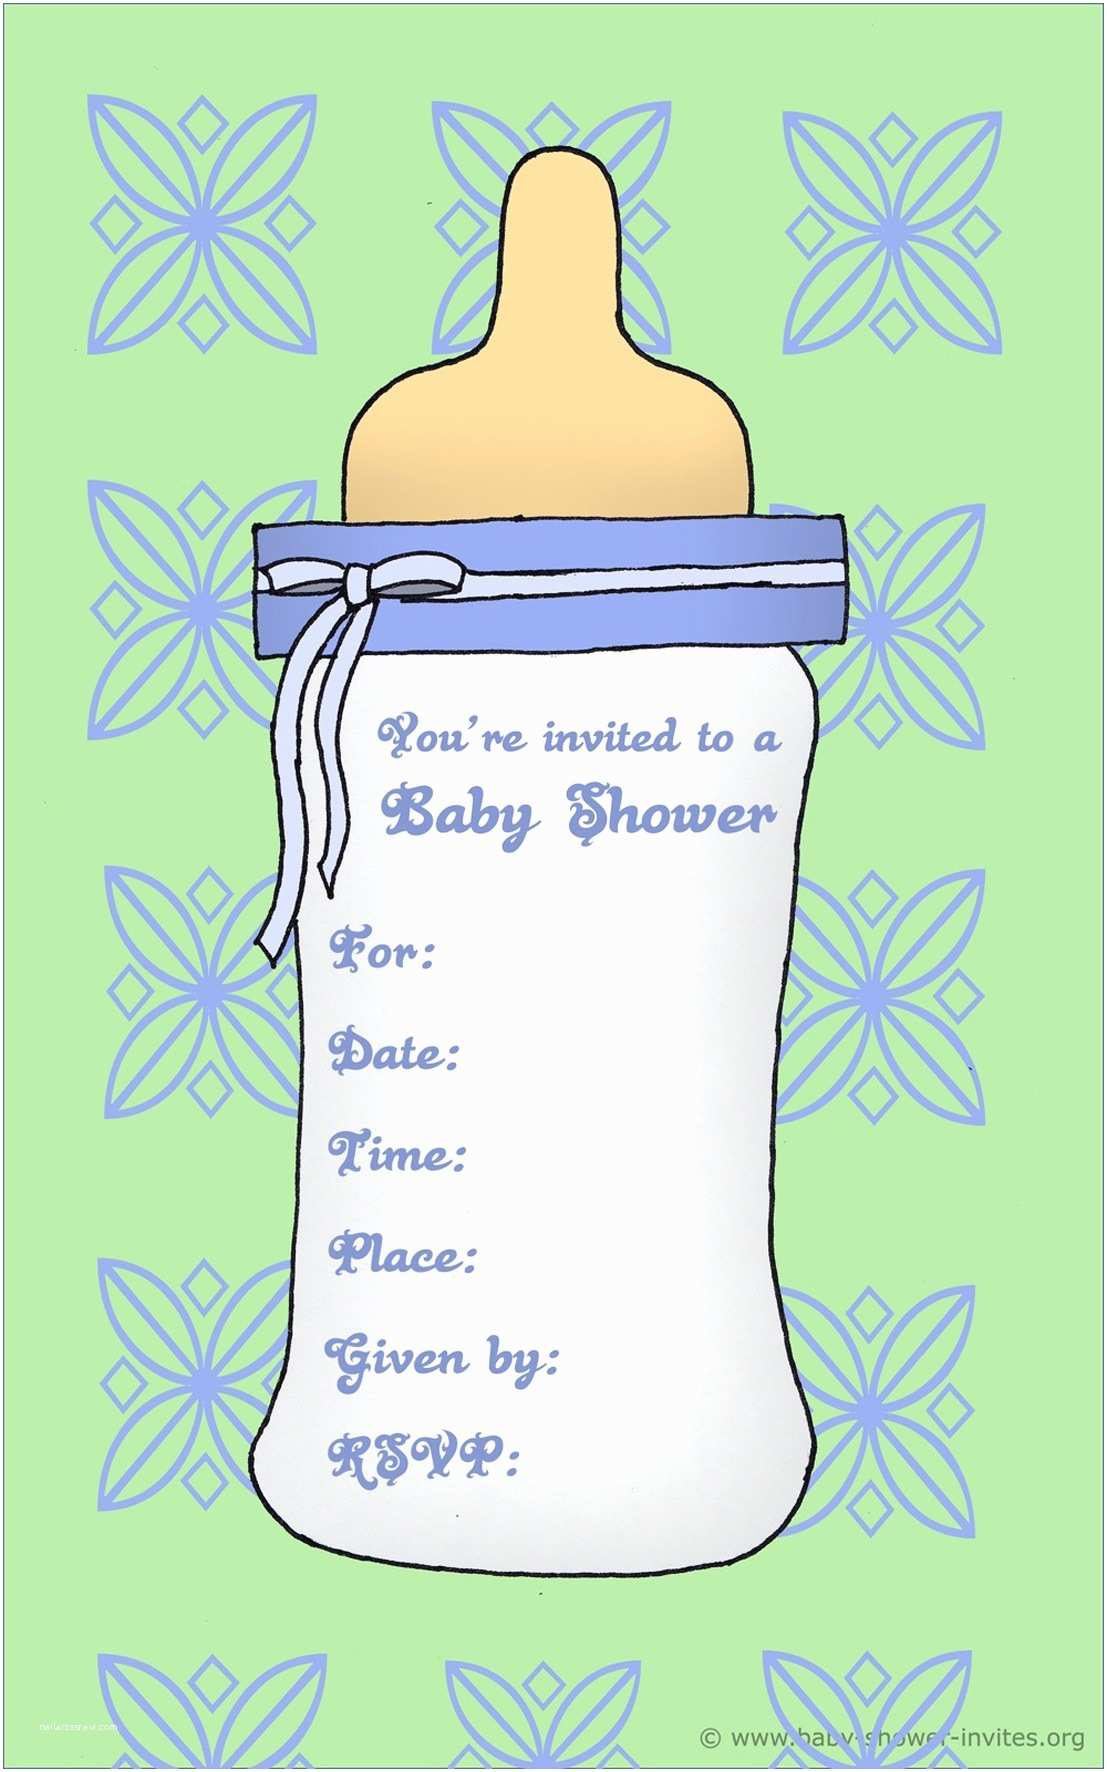 Free Baby Shower Invitation Templates | Invitation Templates For Baby Boy Shower